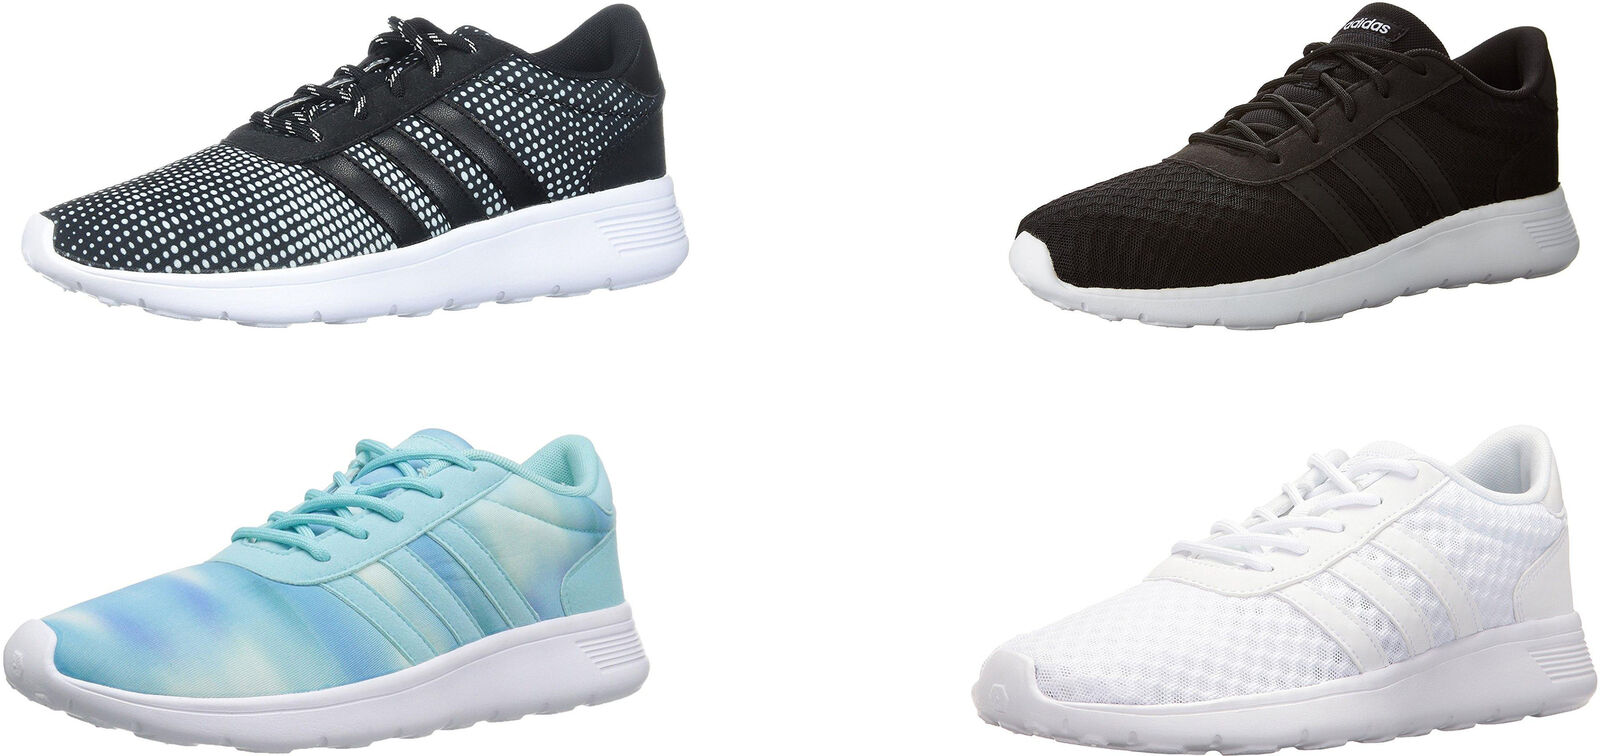 Adidas Women's Lite Racer Running shoes, 4 colors